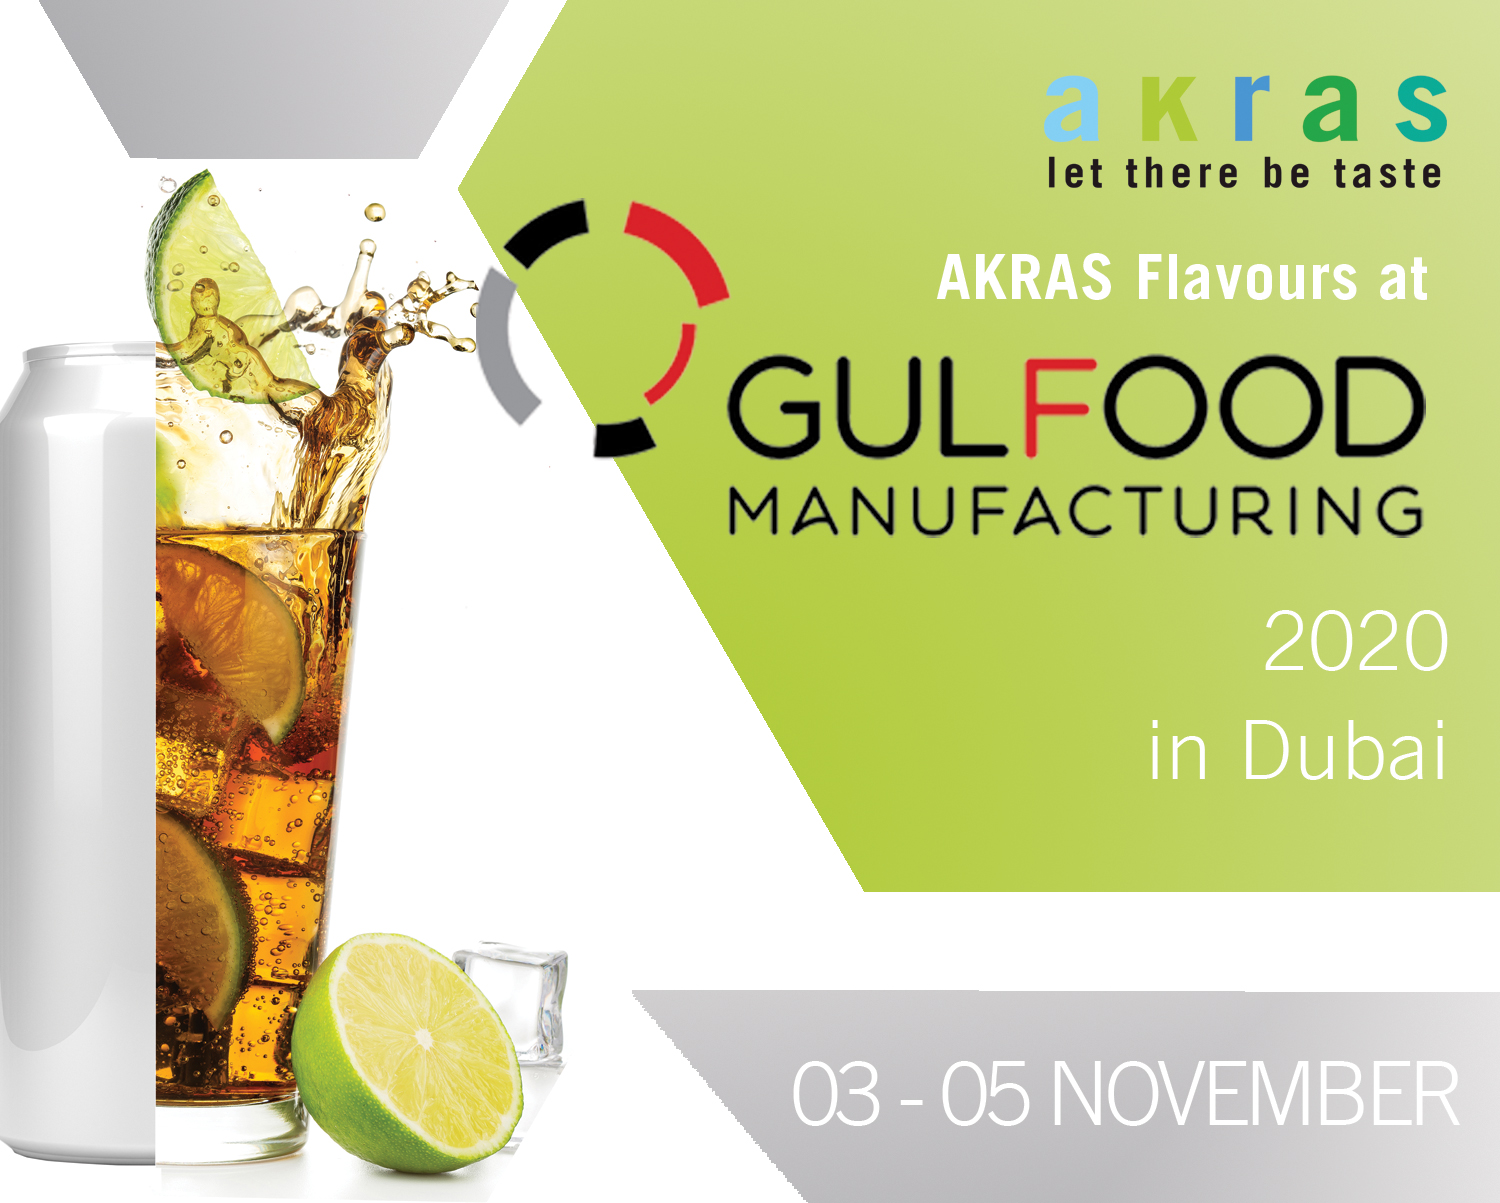 AKRAS Flavours Gulfood Manufacturing